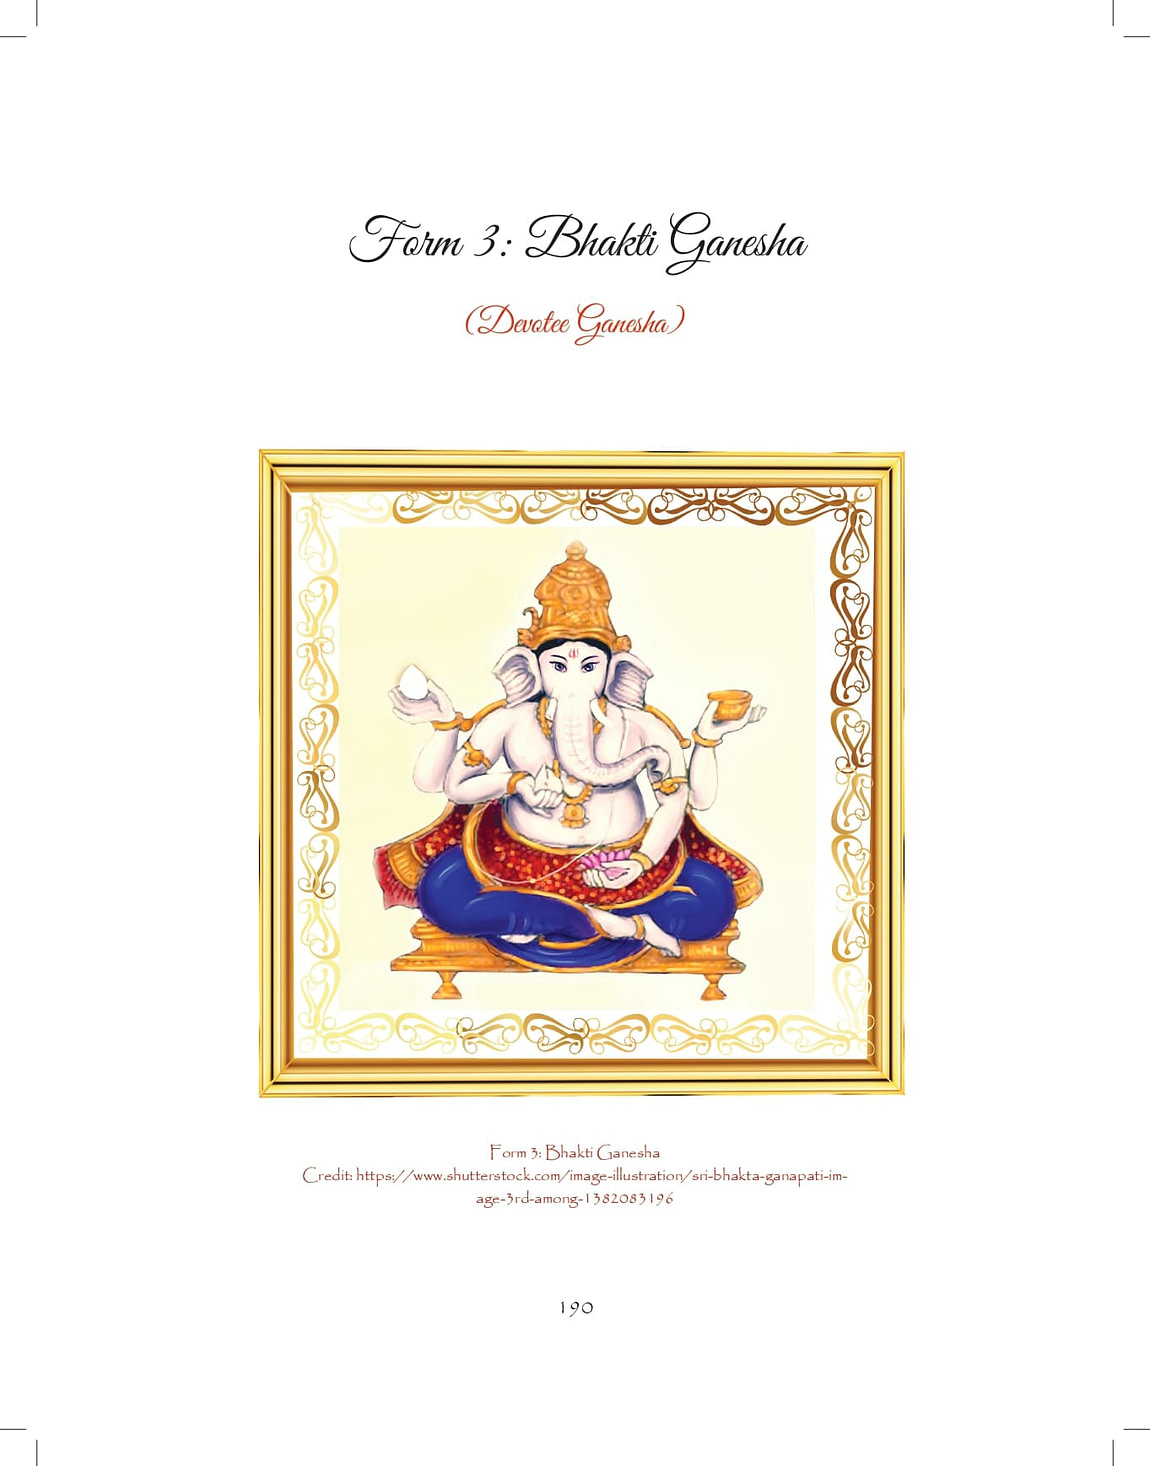 Ganesh-print_pages-to-jpg-0190.jpg